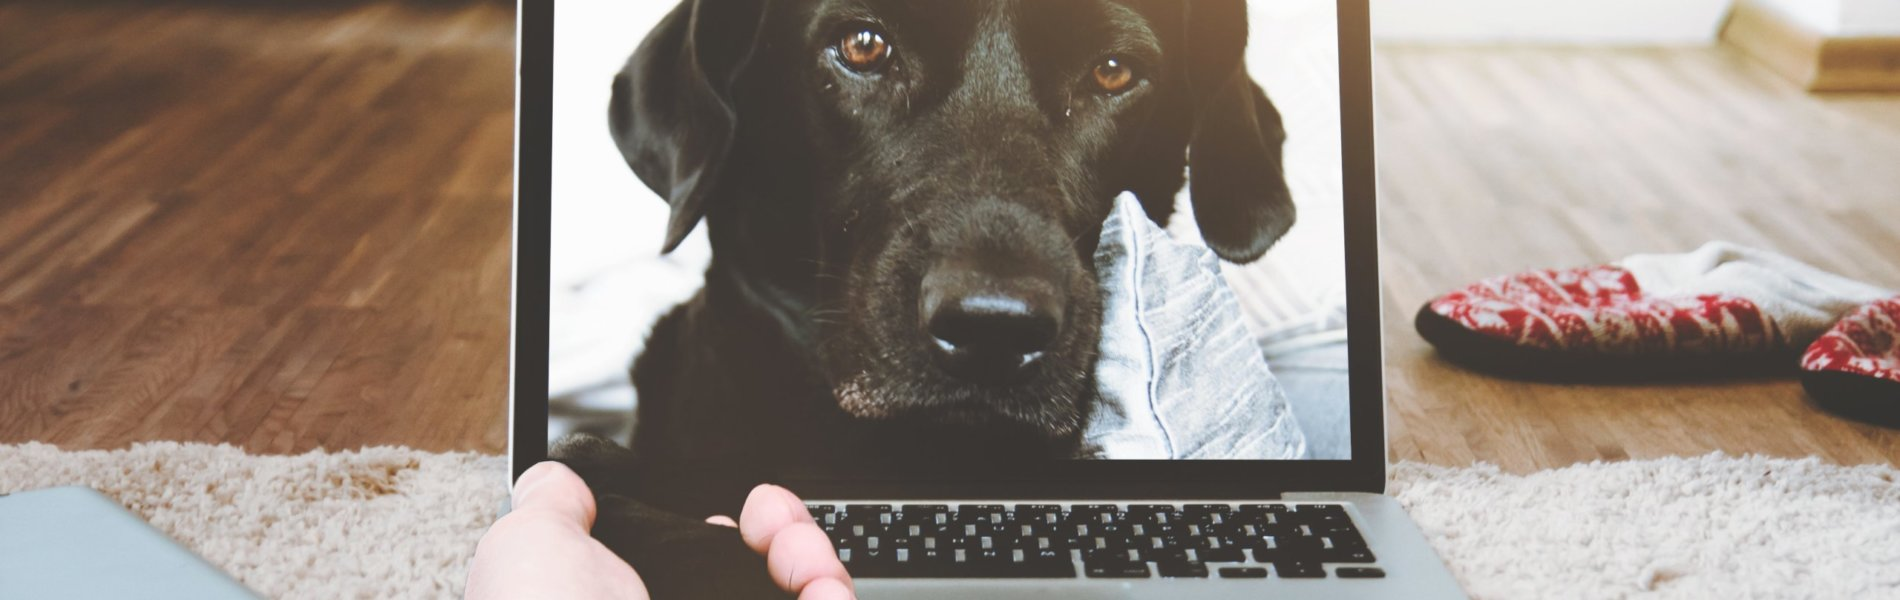 Dog reaching out from a computer screen. Photo by Daniel Frank from Pexels